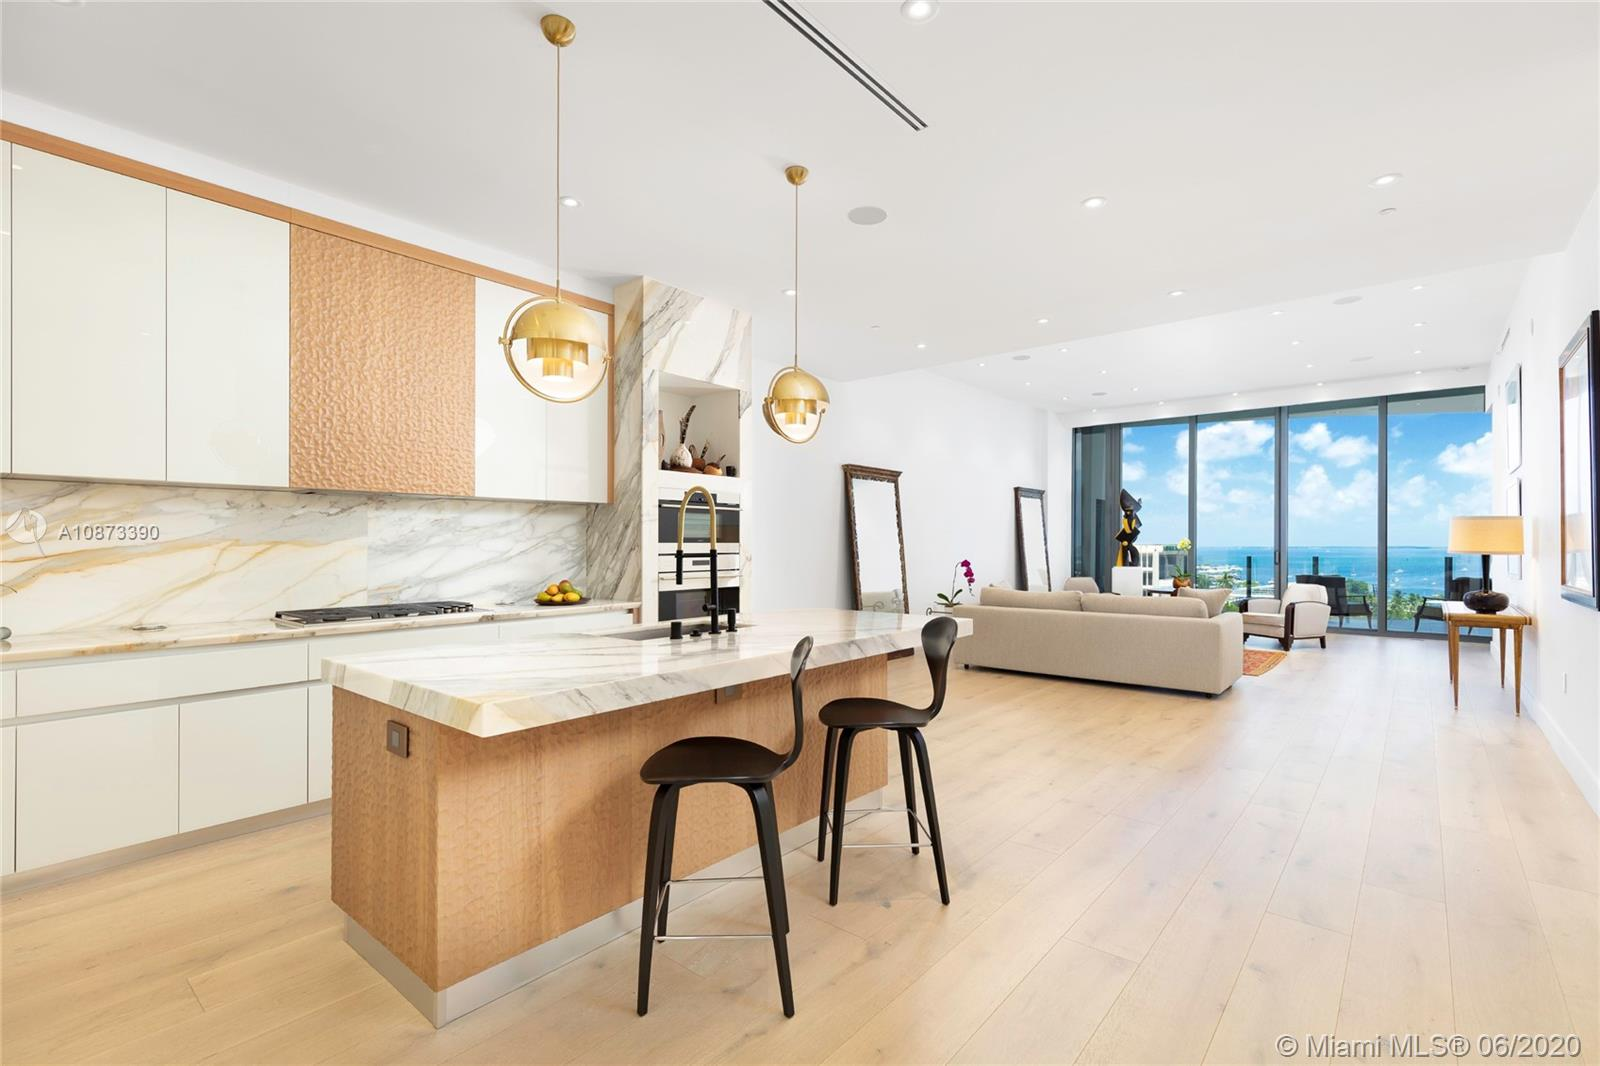 One of a kind custom floor plan and design at Two Park Grove #9B. Finest finishes and details throughout. Spectacular wide-open spaces with dramatic water views of Biscayne Bay and Regatta Park from the 12' floor-to-ceiling windows and 393 SF waterfront terrace. European White Oak wide-plank wood floors throughout, with Shell Stone marble floors and walls in the master bath. ITALKRAFT kitchen with custom cabinetry, Wolf gas range, oven, steamer, built-in coffee maker and Subzero refrigerator. 85 LED lights, ceiling speakers, electric shades, and smart home system. 5-star amenities including 24-hour concierge, butler service, 2 restaurants, fitness center, spa, yoga room, 4 pools with private cabanas & attendants, theatre, library, club room, wine cellar, cigar room, kid's playroom & more.